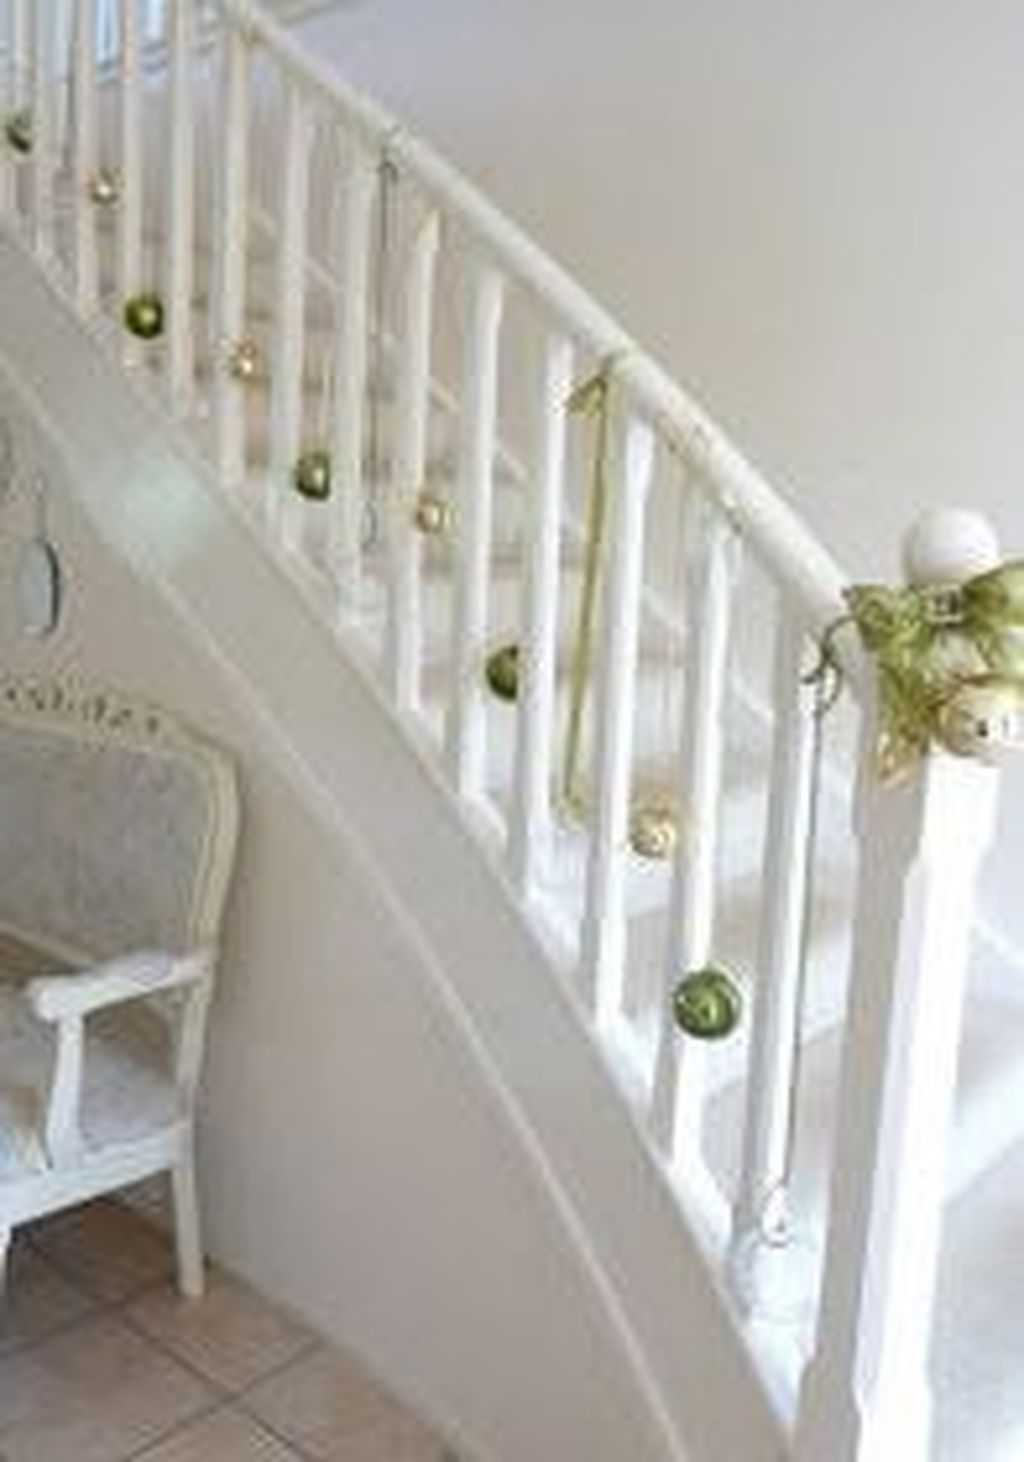 Charming Winter Staircase Design Ideas With Banister Ornaments To Try Asap 17